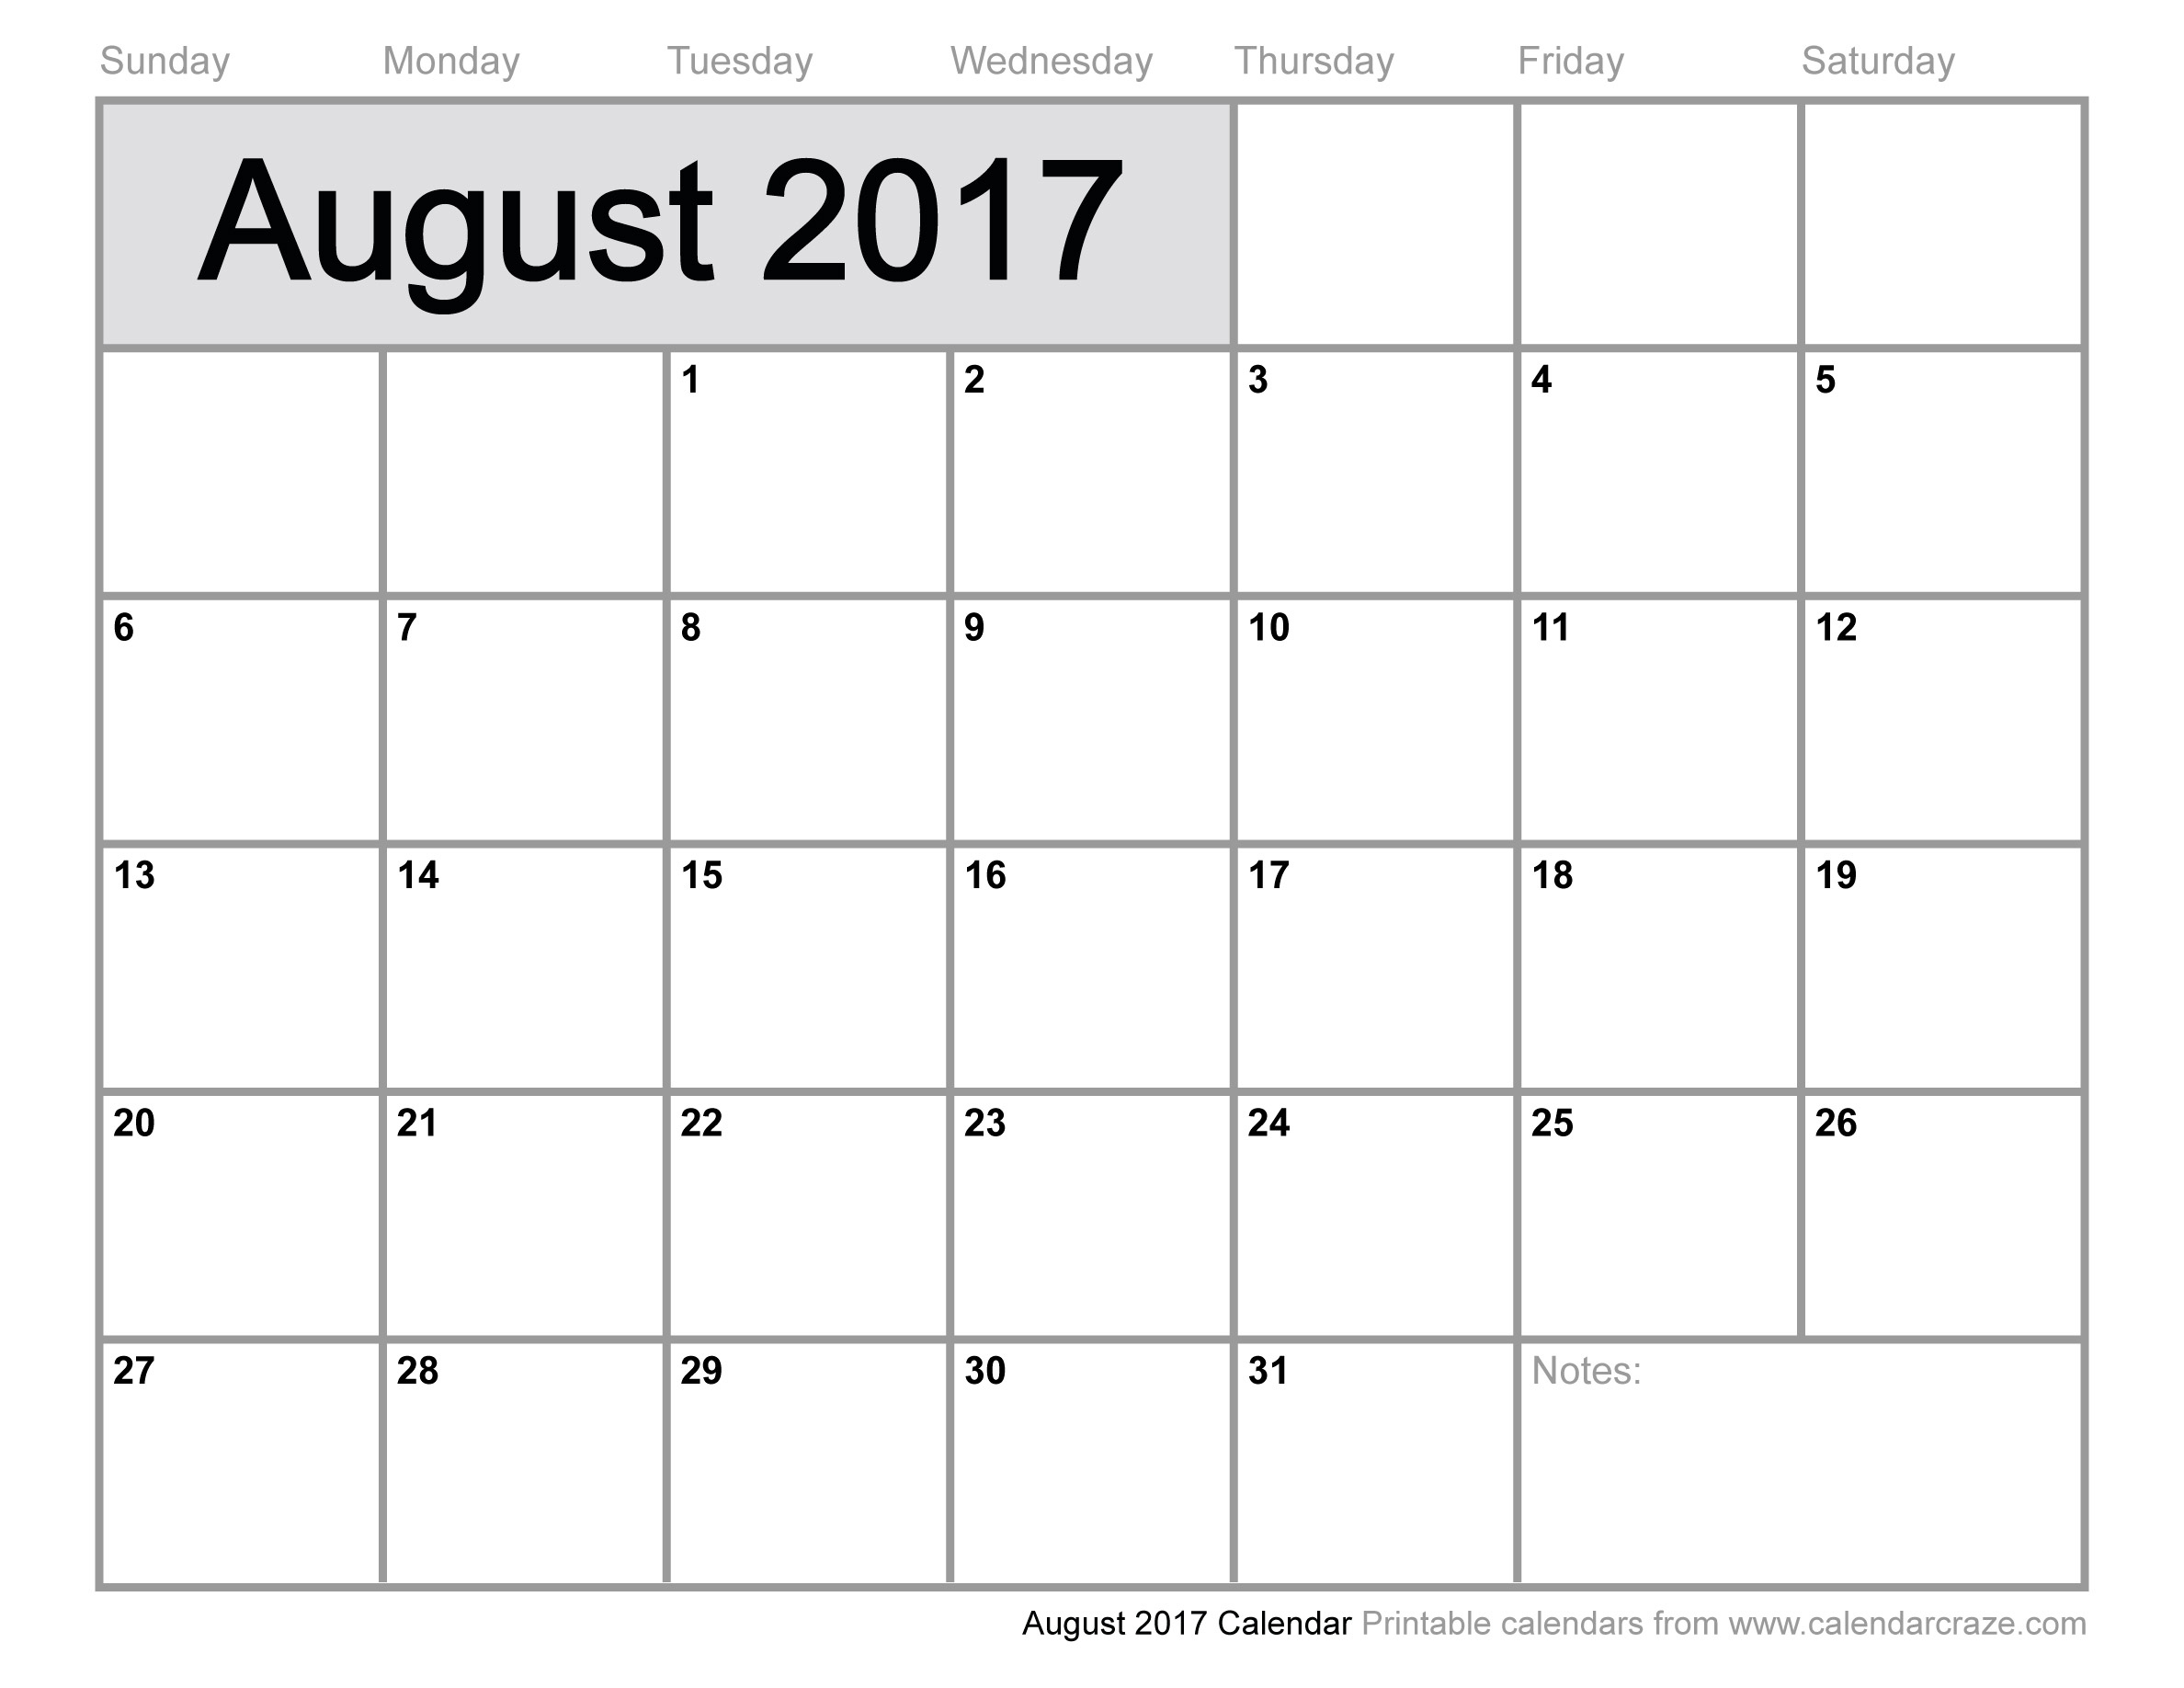 August 2017 Calendar Excel | weekly calendar template